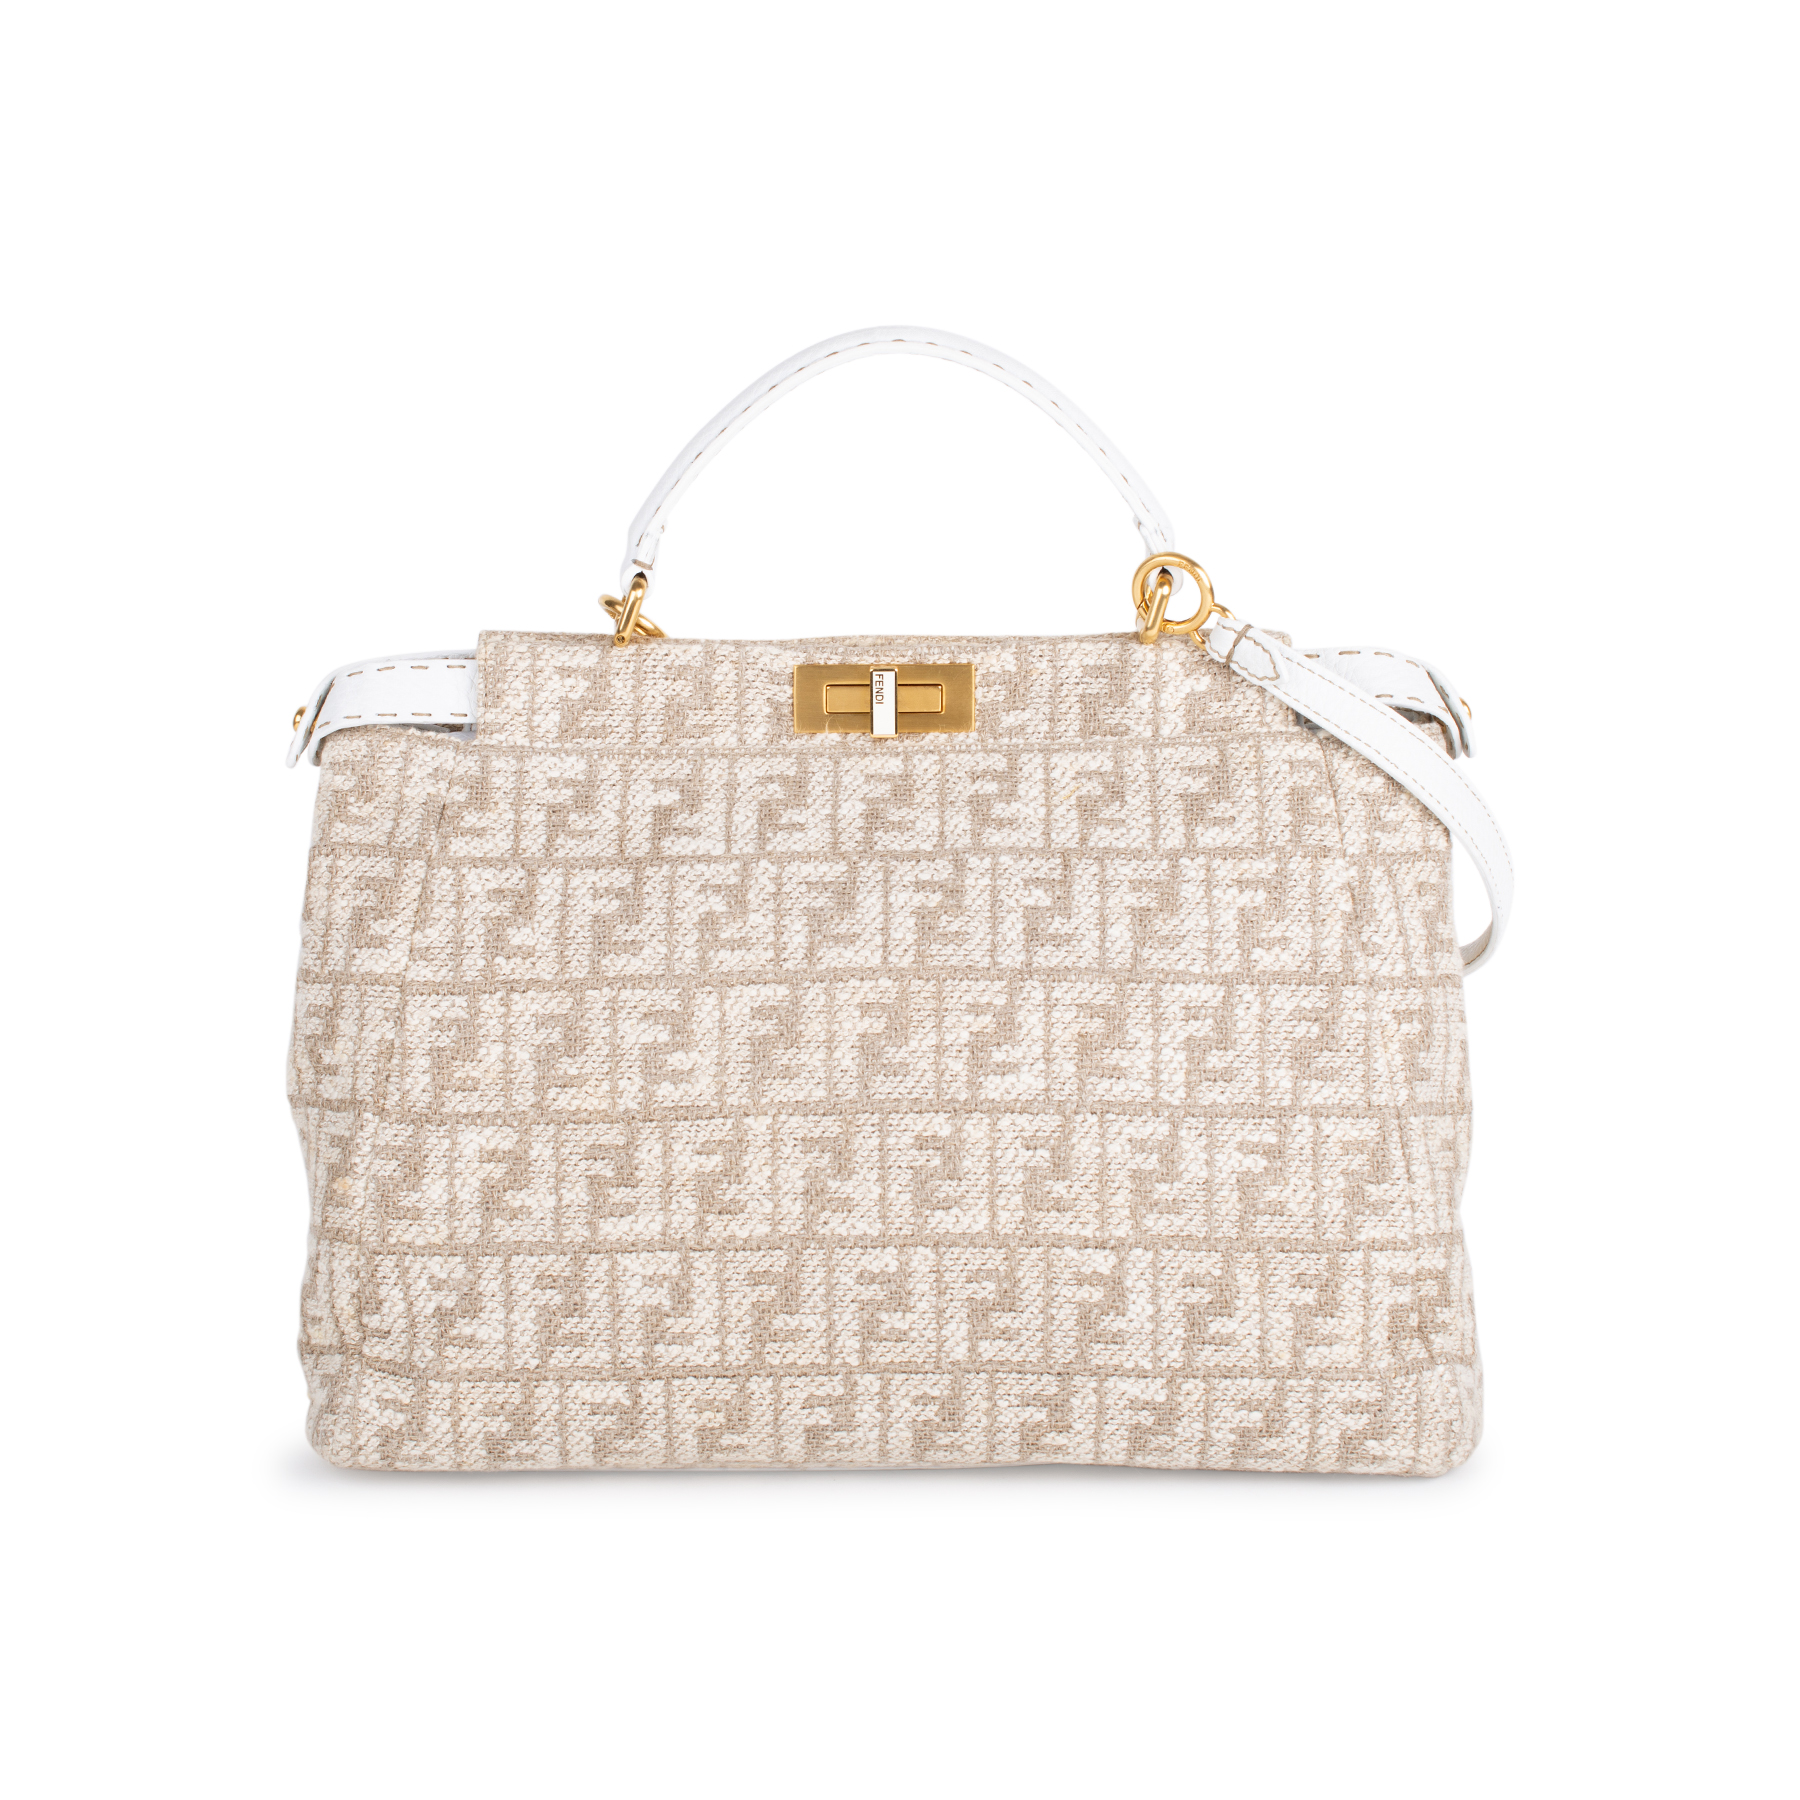 ded562a881 Authentic Second Hand Fendi Large Monogram Peekaboo Bag (PSS-333-00019) -  THE FIFTH COLLECTION